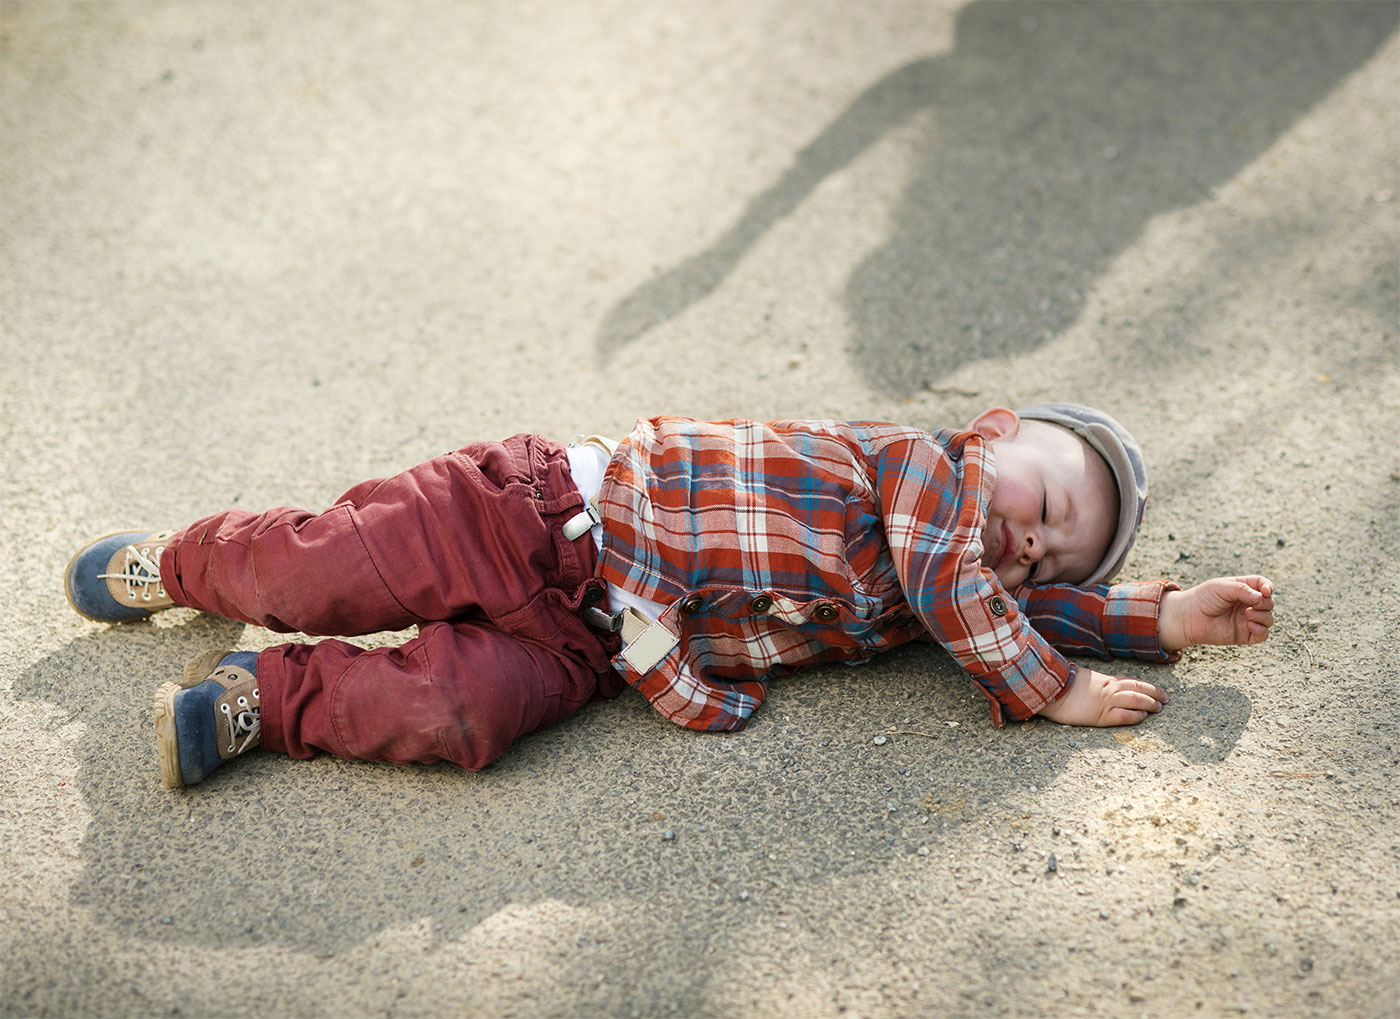 Little boy lying on the ground, throwing a tantrum in public outdoors